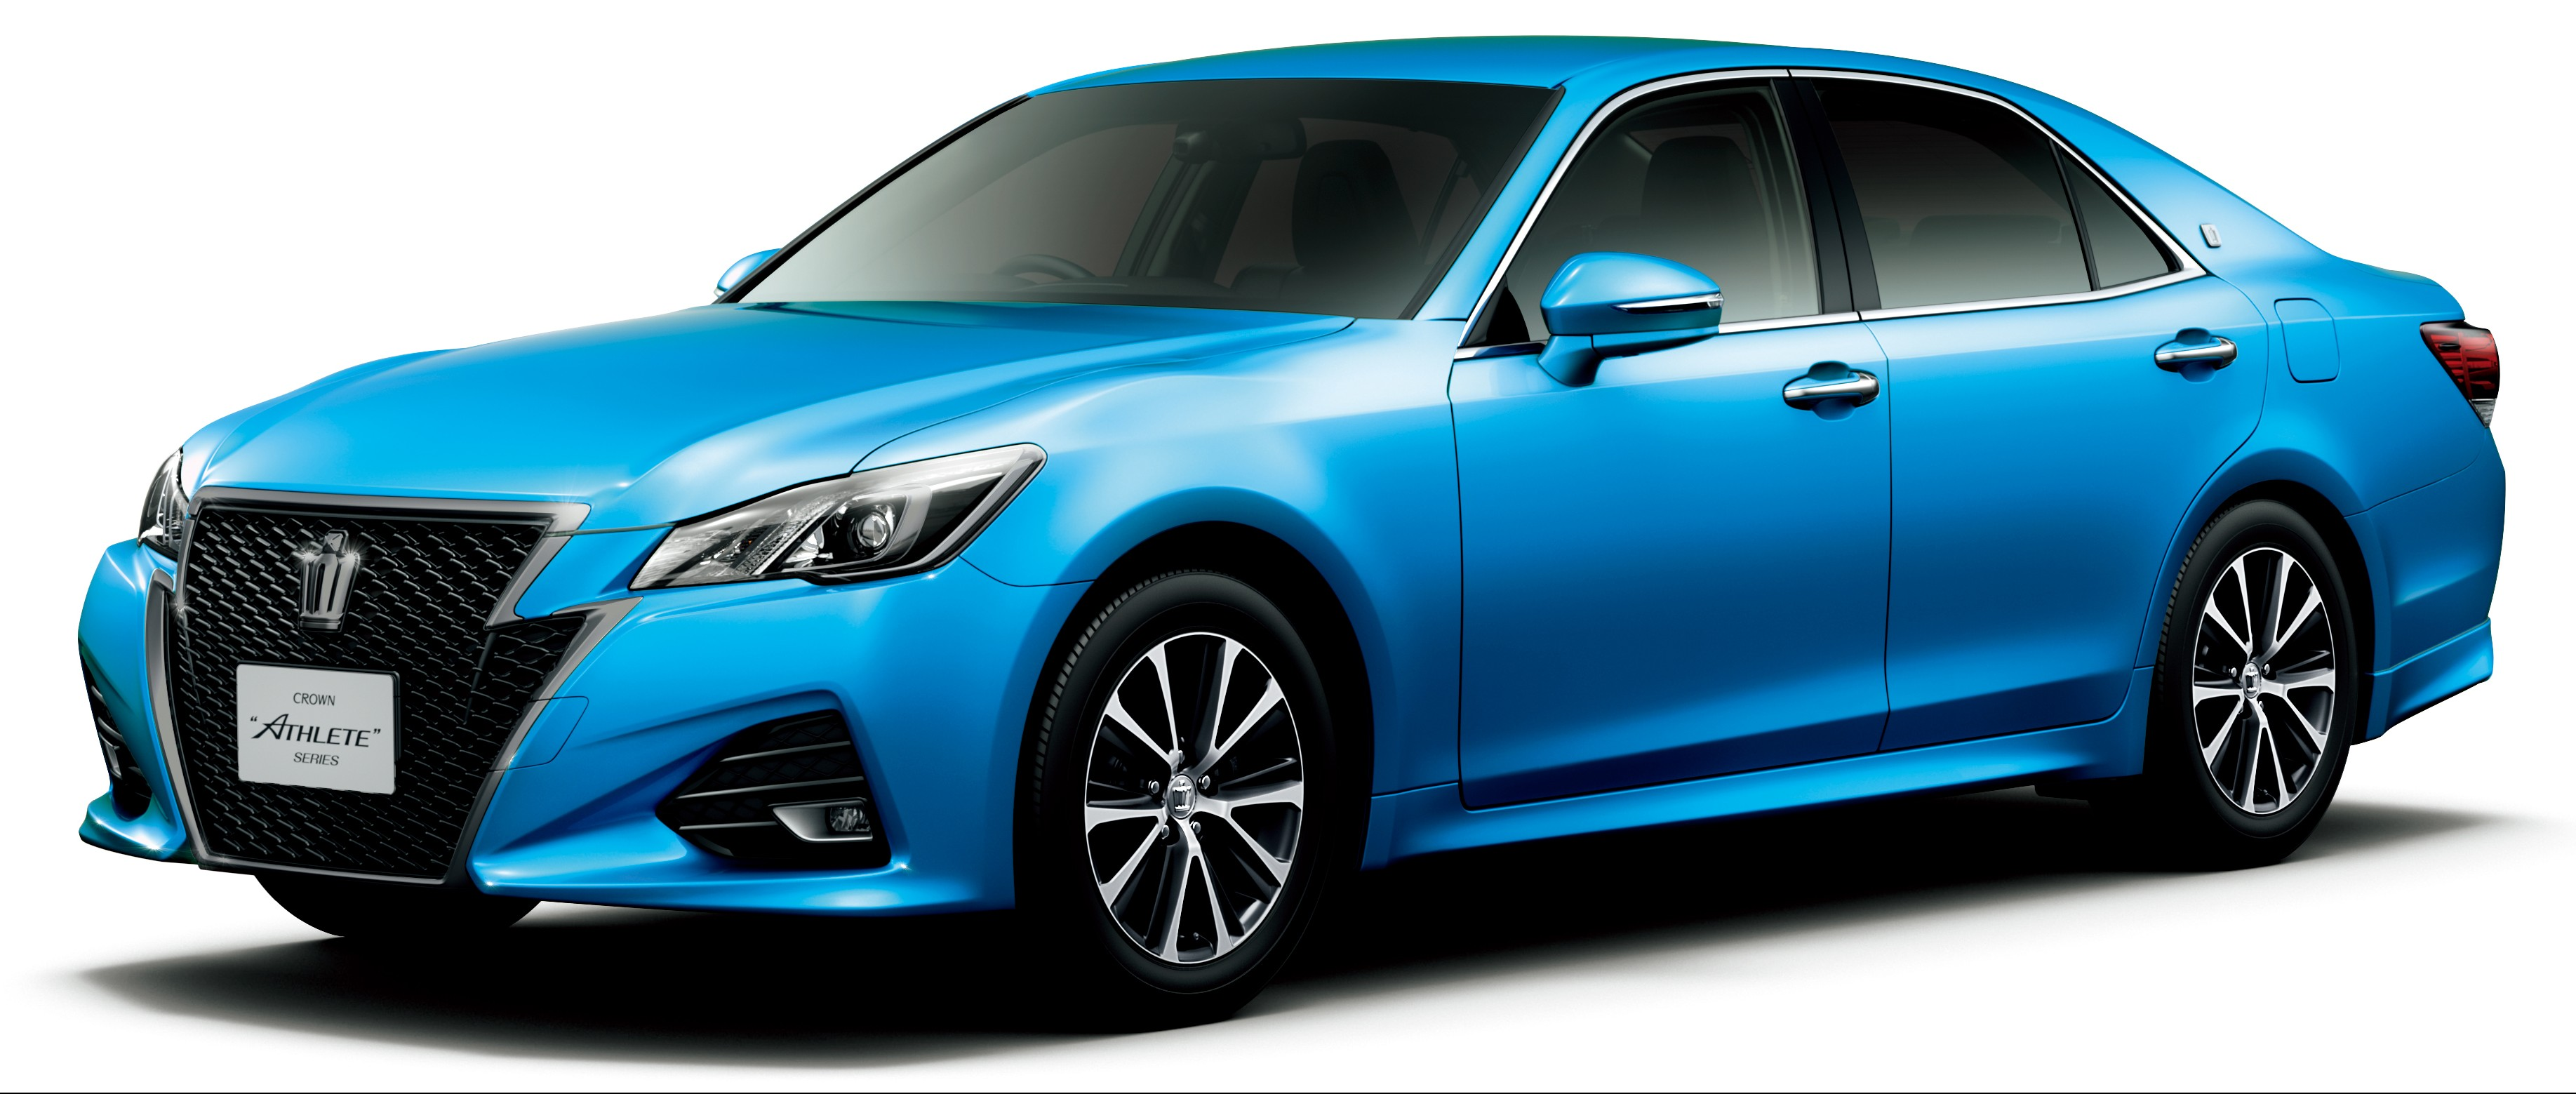 Toyota Crown Facelift Gets New 2 0 Litre Turbo Engine Paul